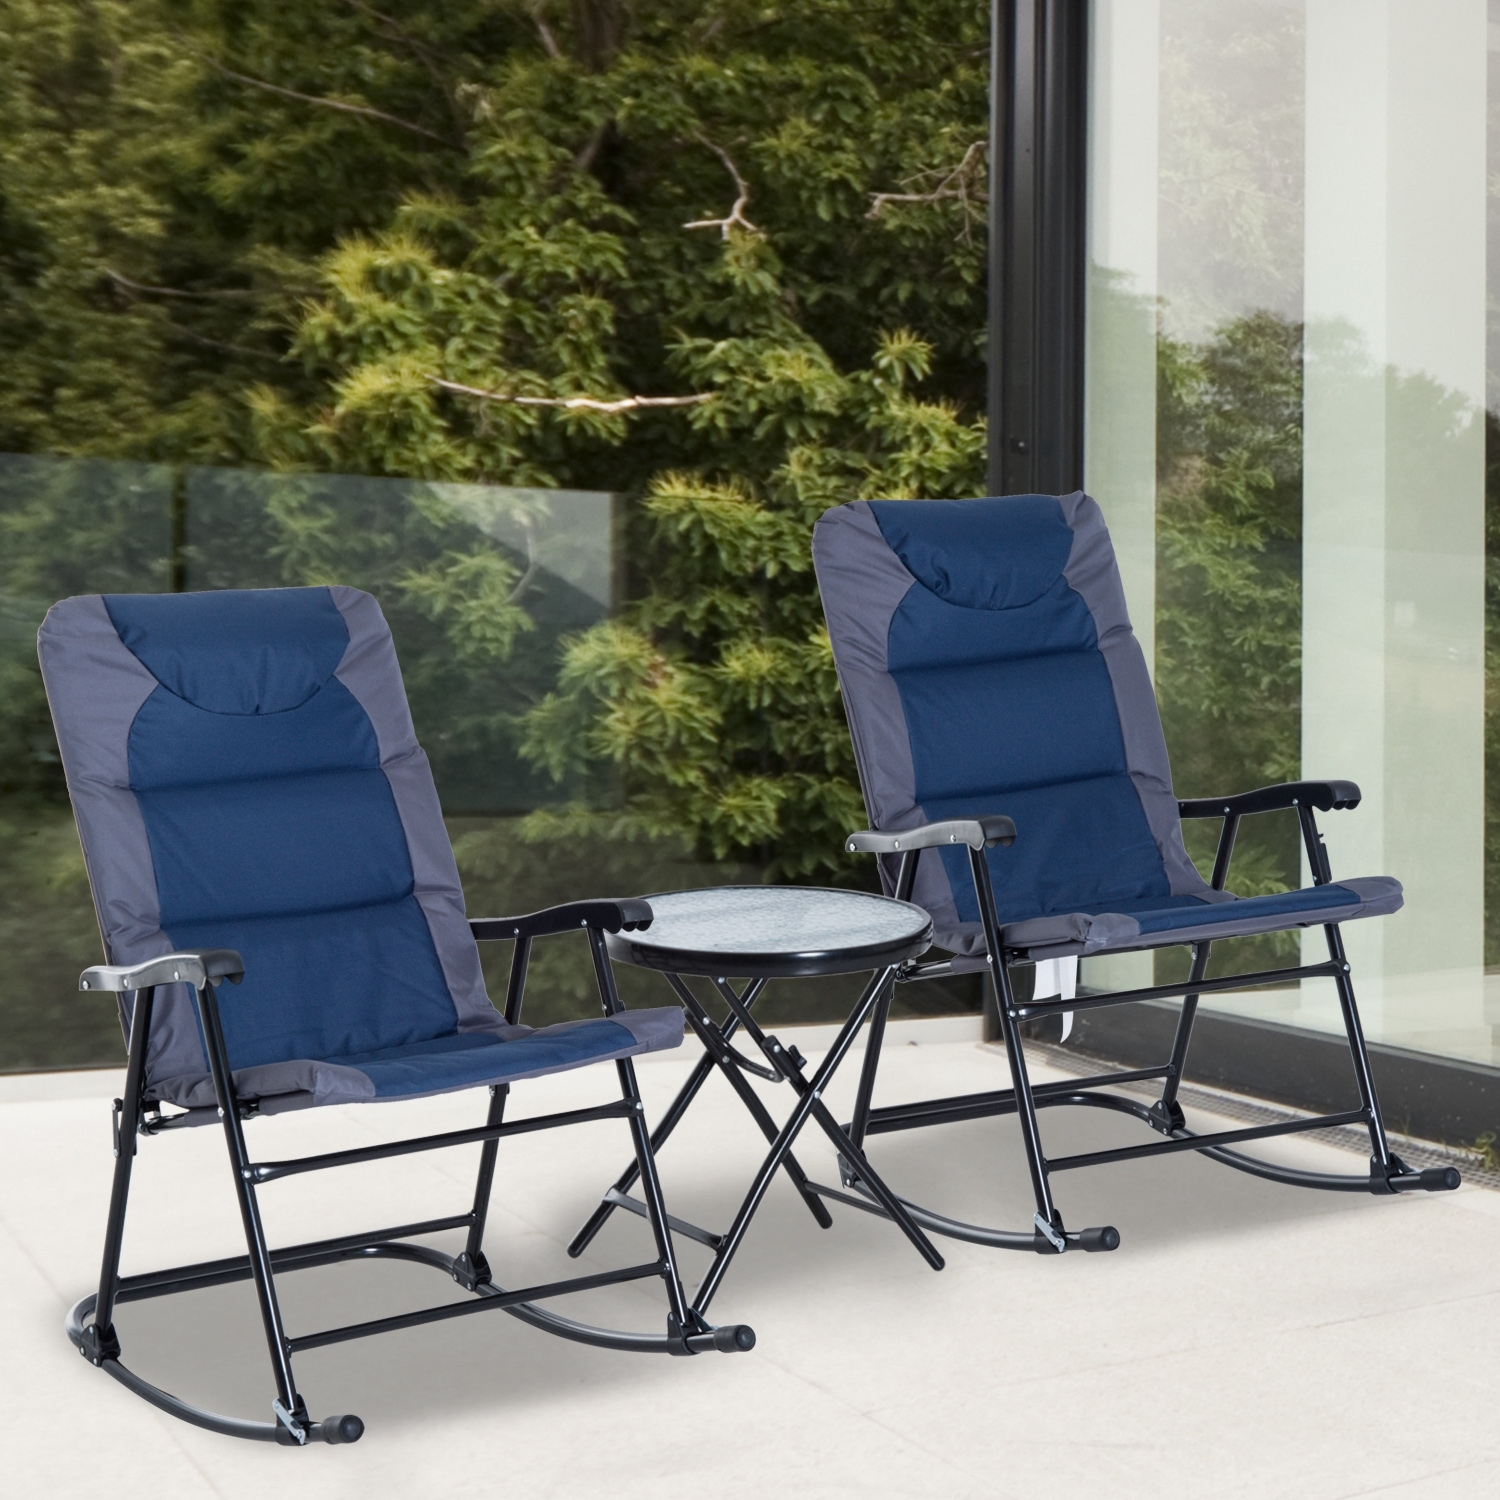 Outsunny 3 Piece Folding Outdoor Rocking Chair And Table Set Patio Inside Outdoor Rocking Chairs With Table (View 8 of 15)